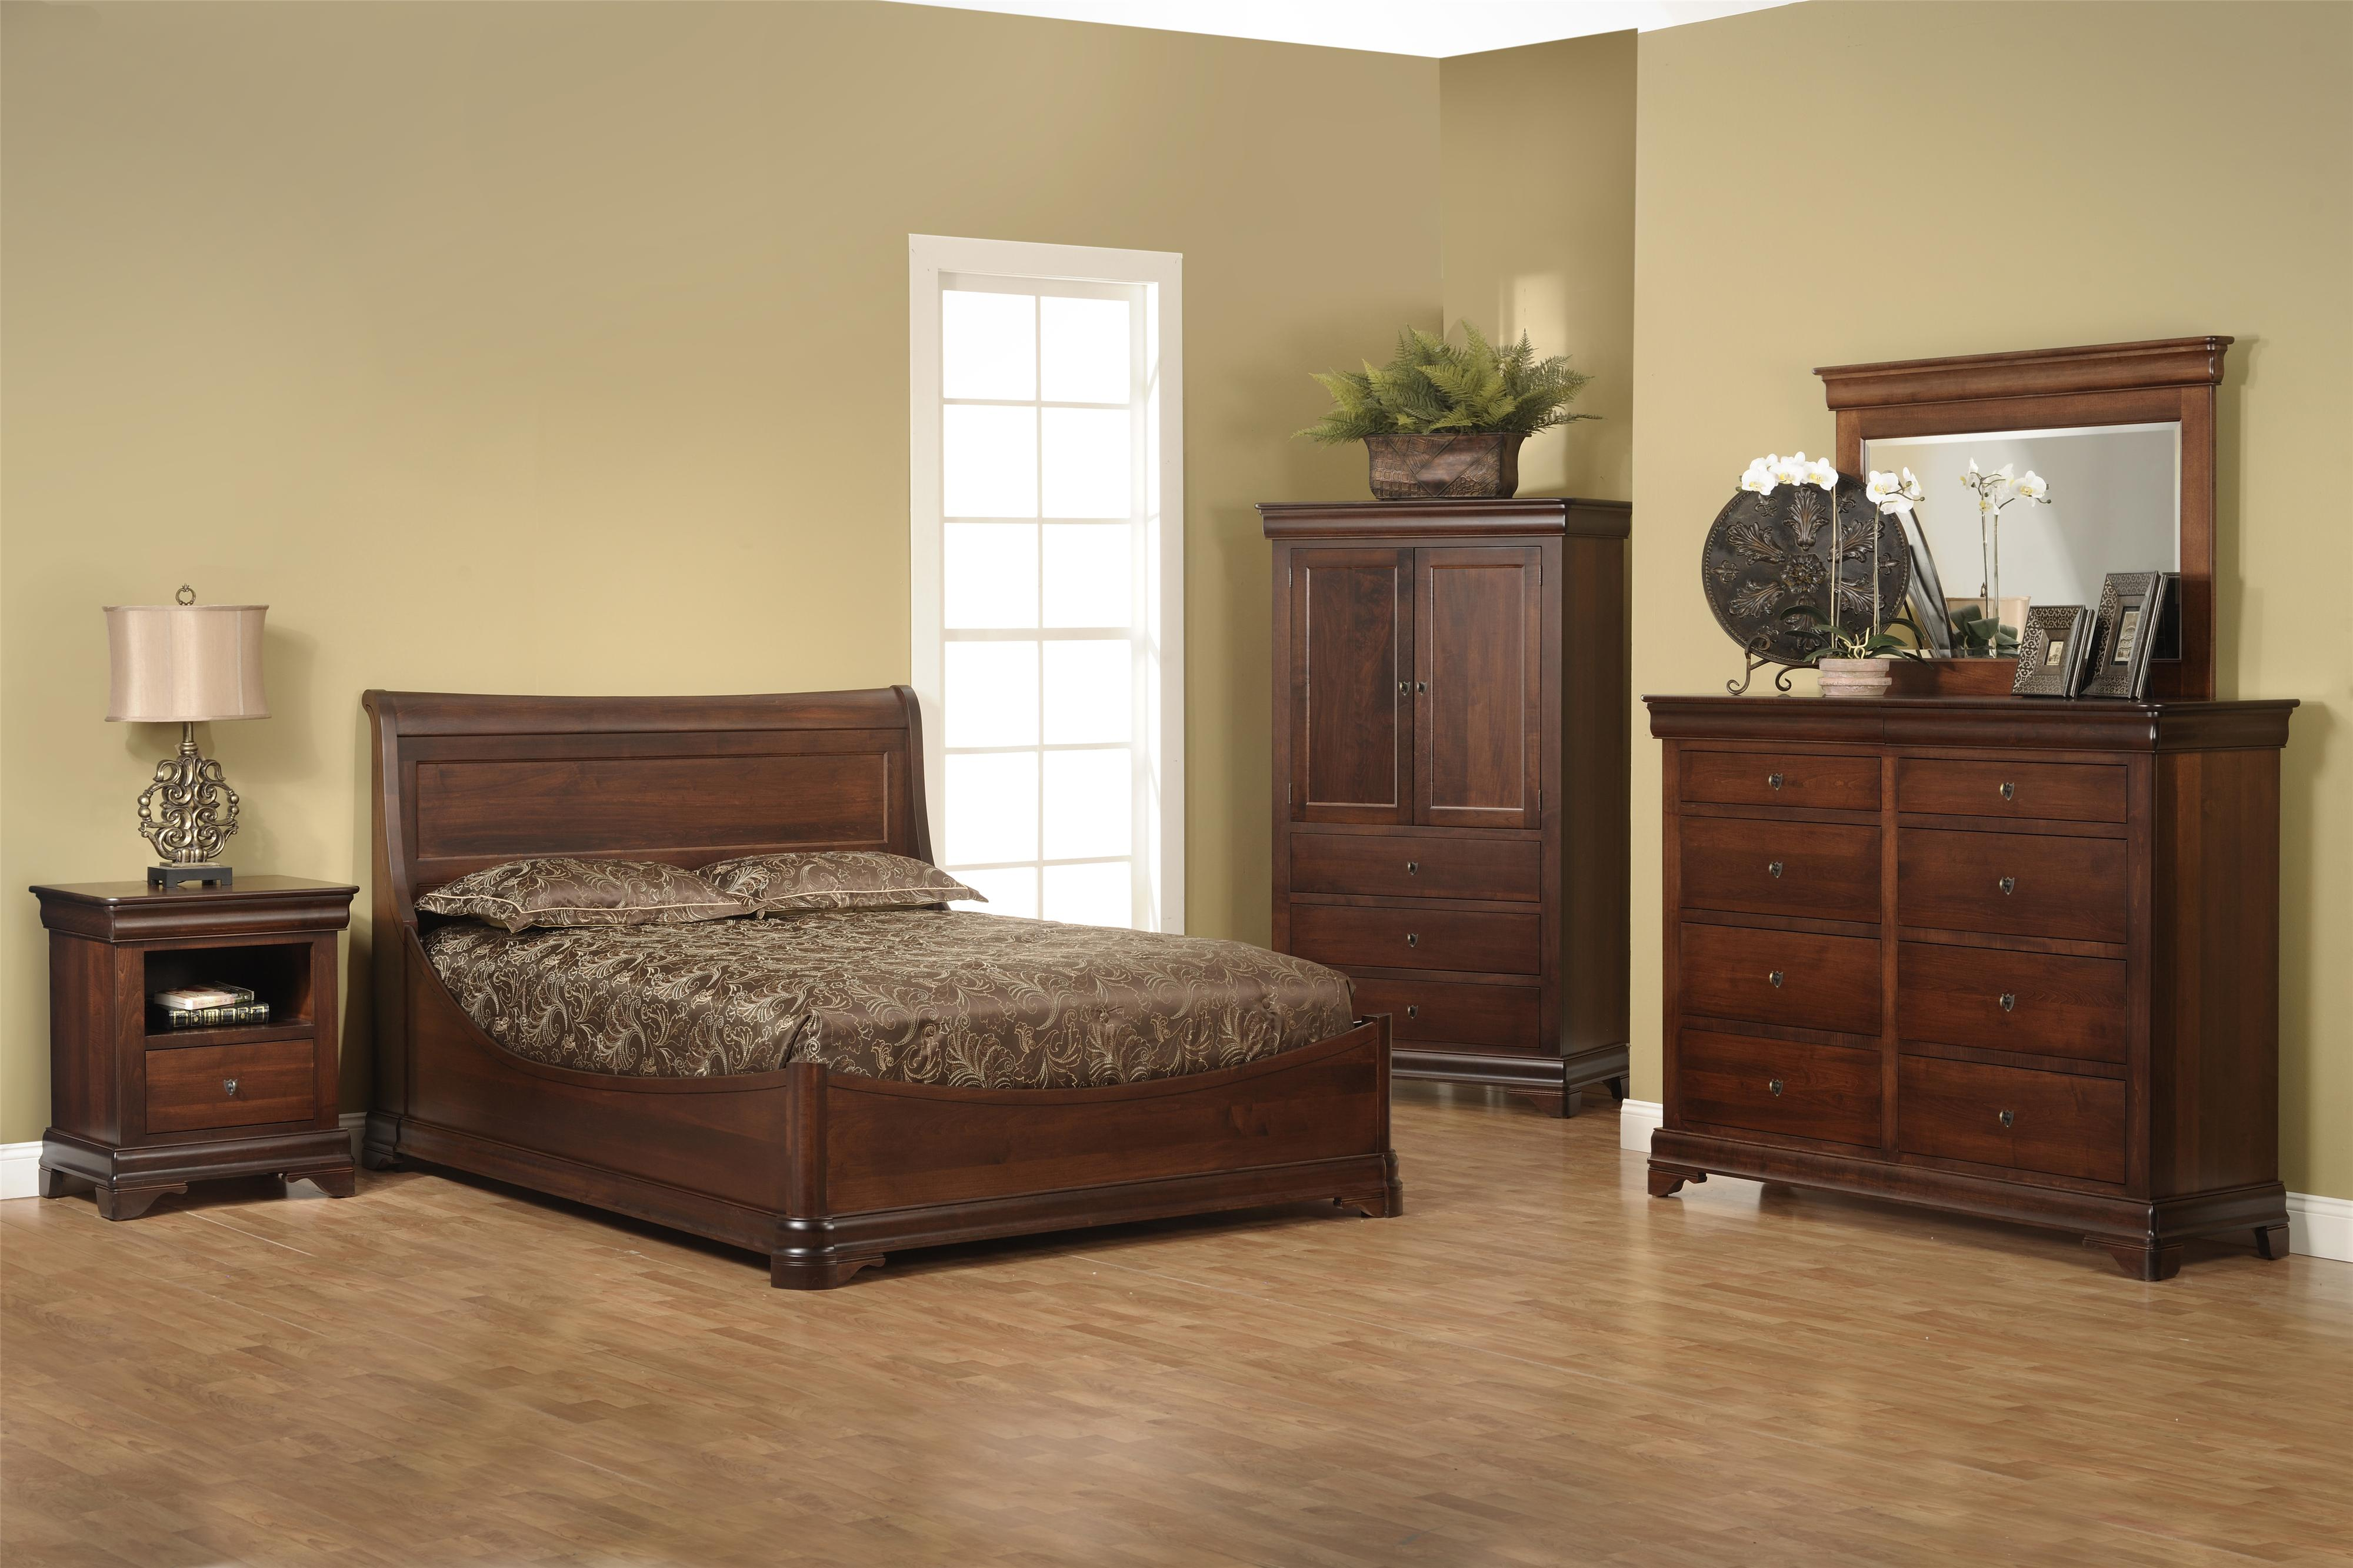 Versallies Full Euro Bedroom Group by Millcraft at Saugerties Furniture Mart